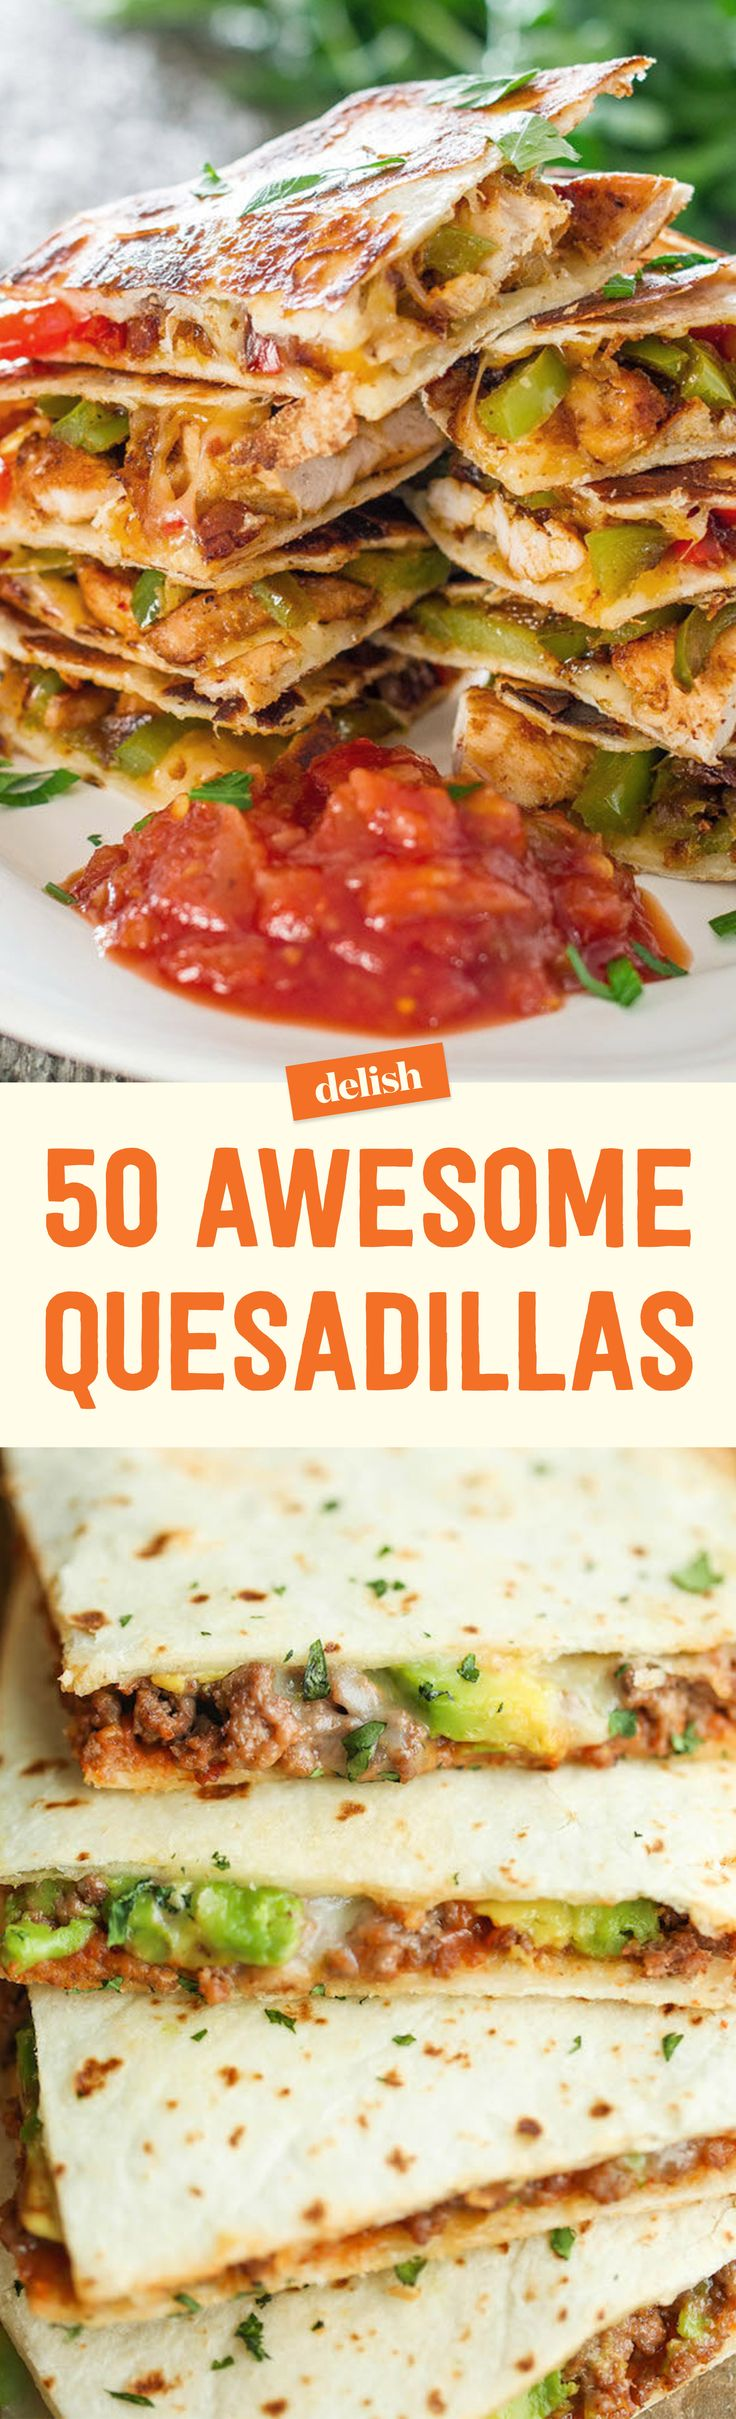 Italian Sausage Quesadillas with Spicy Tomato Sauce